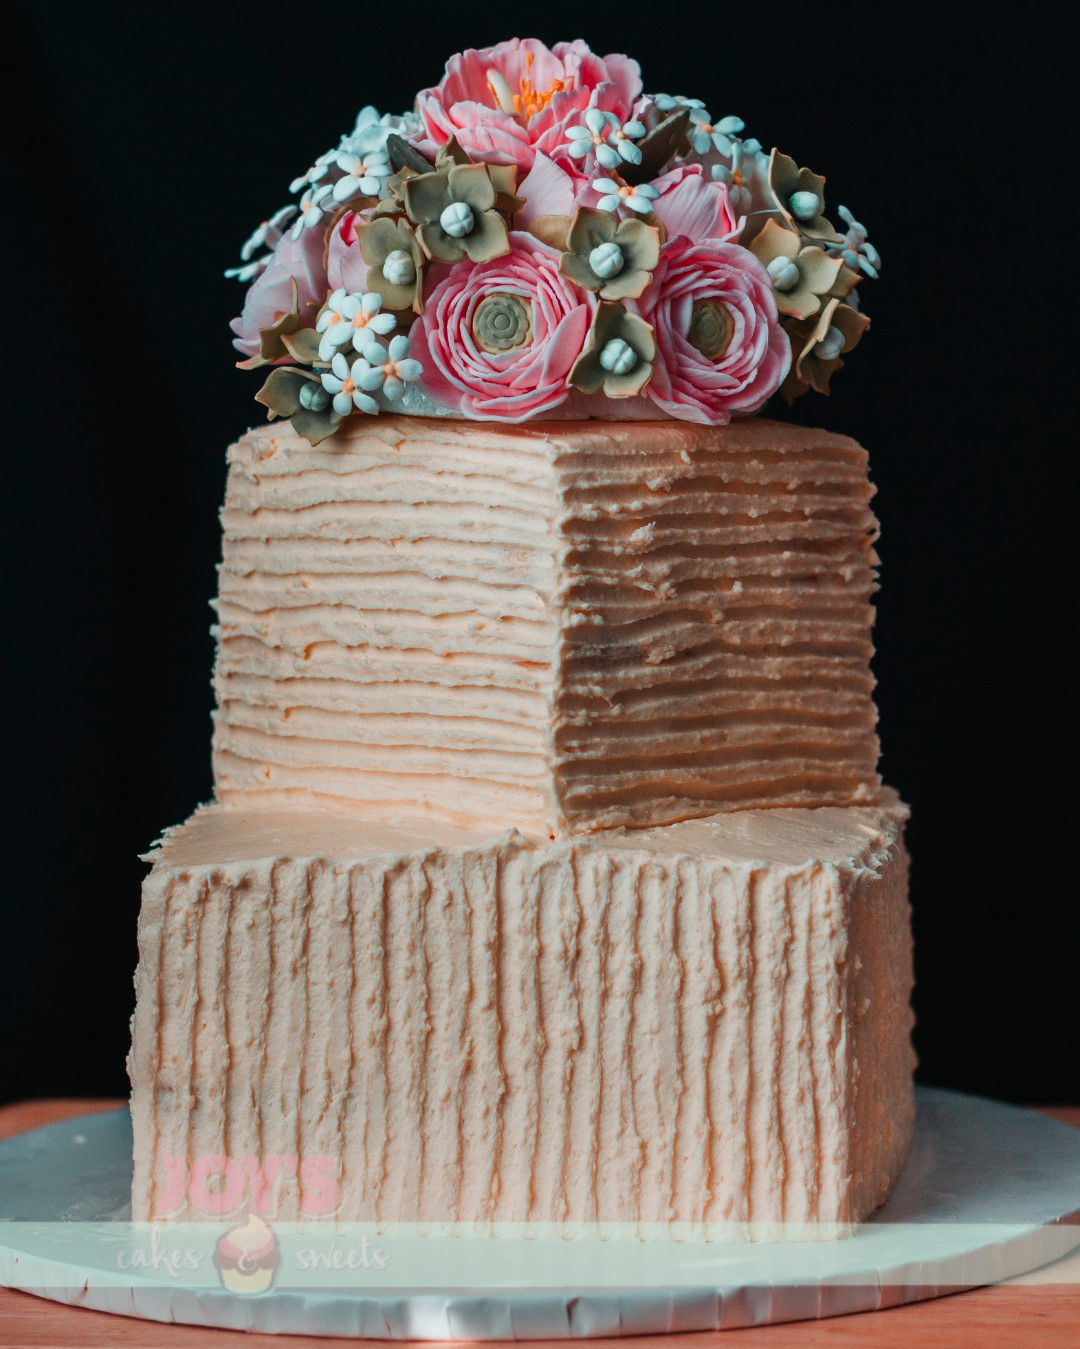 Rustic Cake with Sugar Flower Bouquet